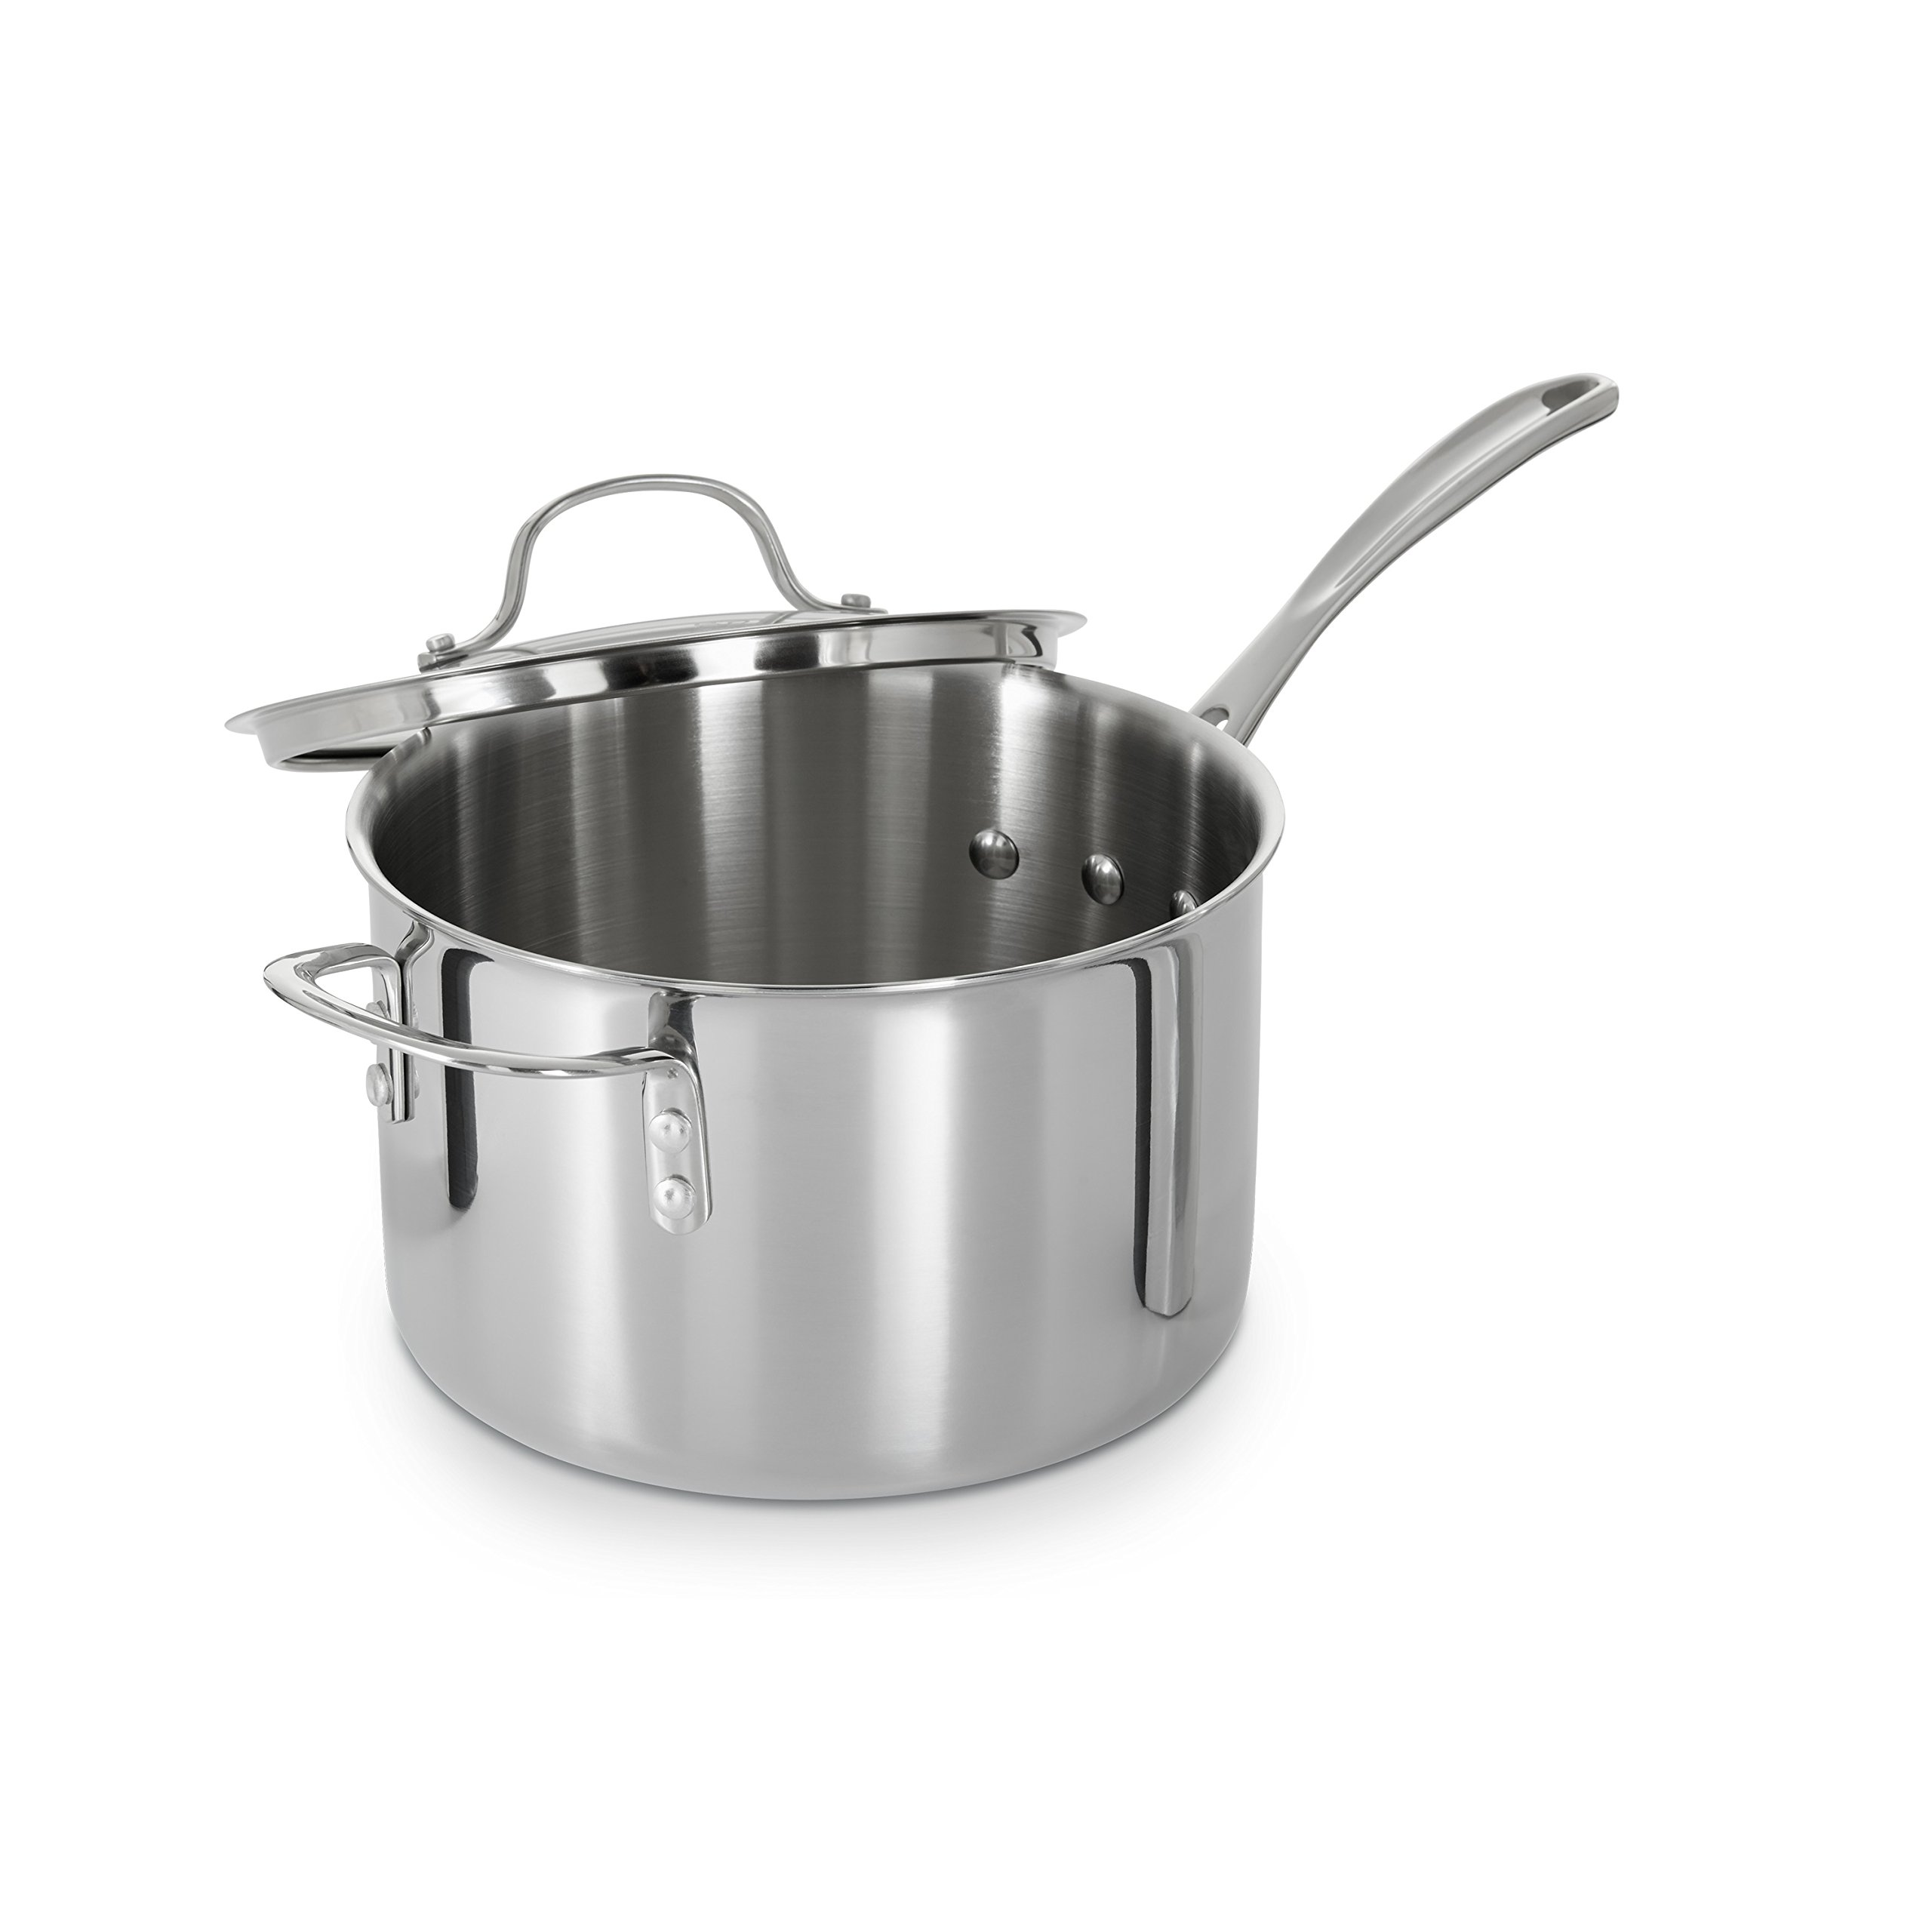 Calphalon Tri-Ply Stainless Steel 4-1/2-Quart Sauce Pan with Cover by Calphalon (Image #3)